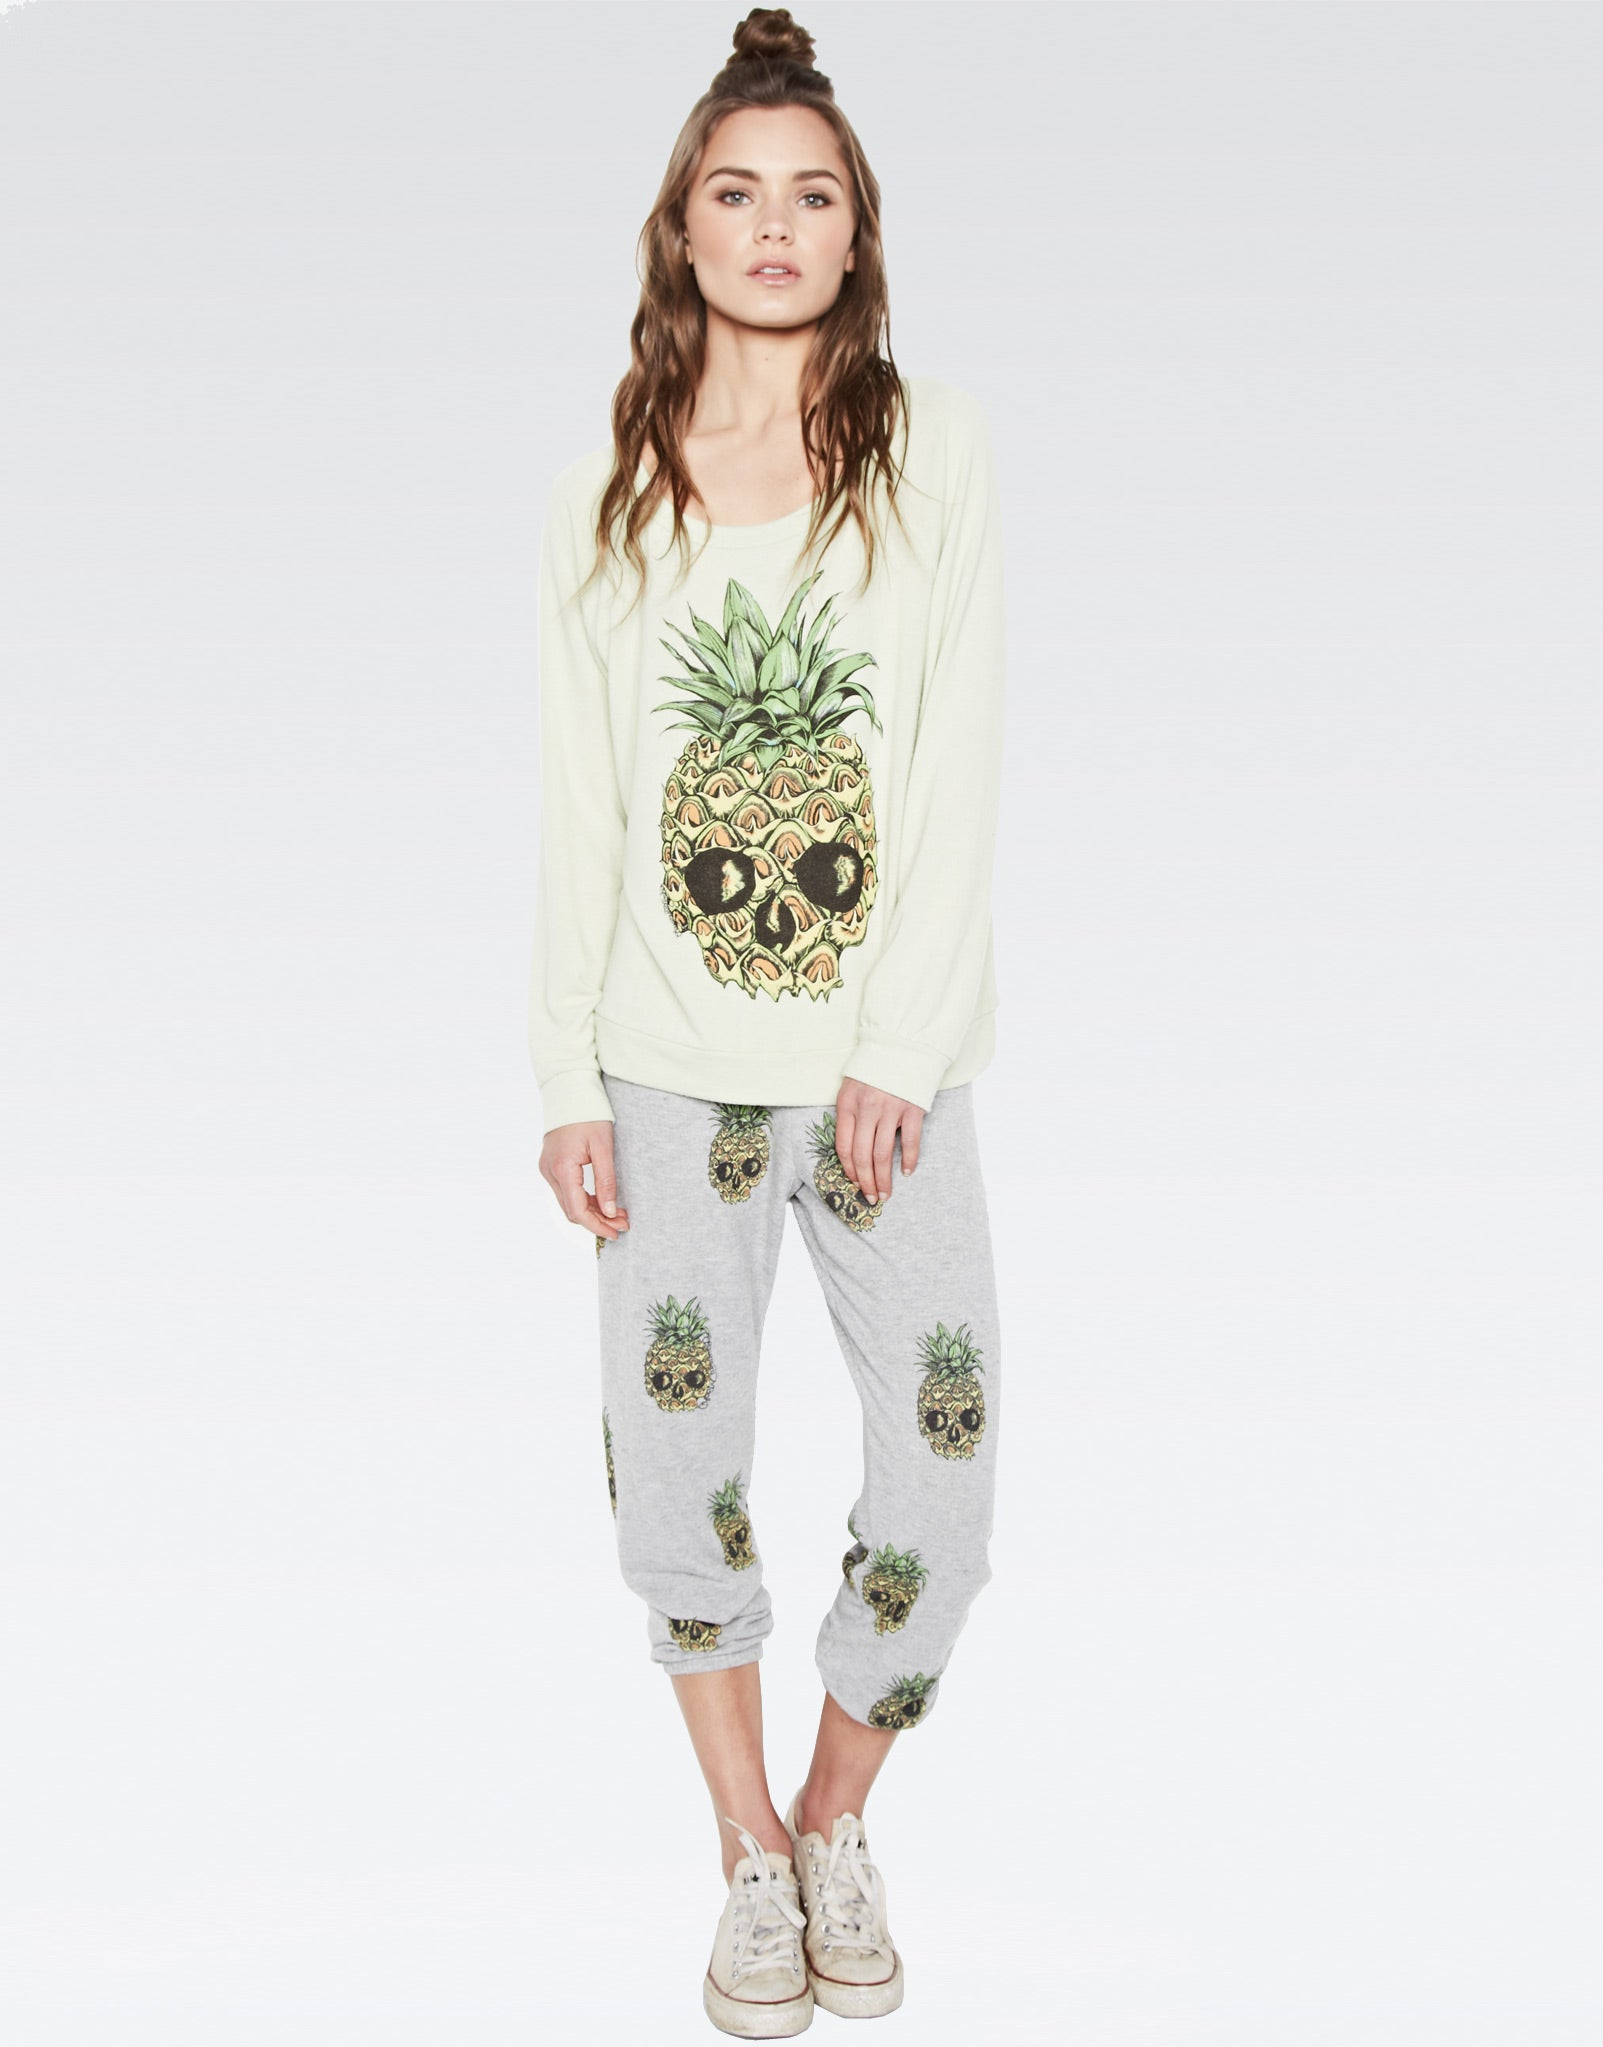 Alana Mini Color Pineapple Skulls Crop Sweat Pant - Lauren Moshi - 2